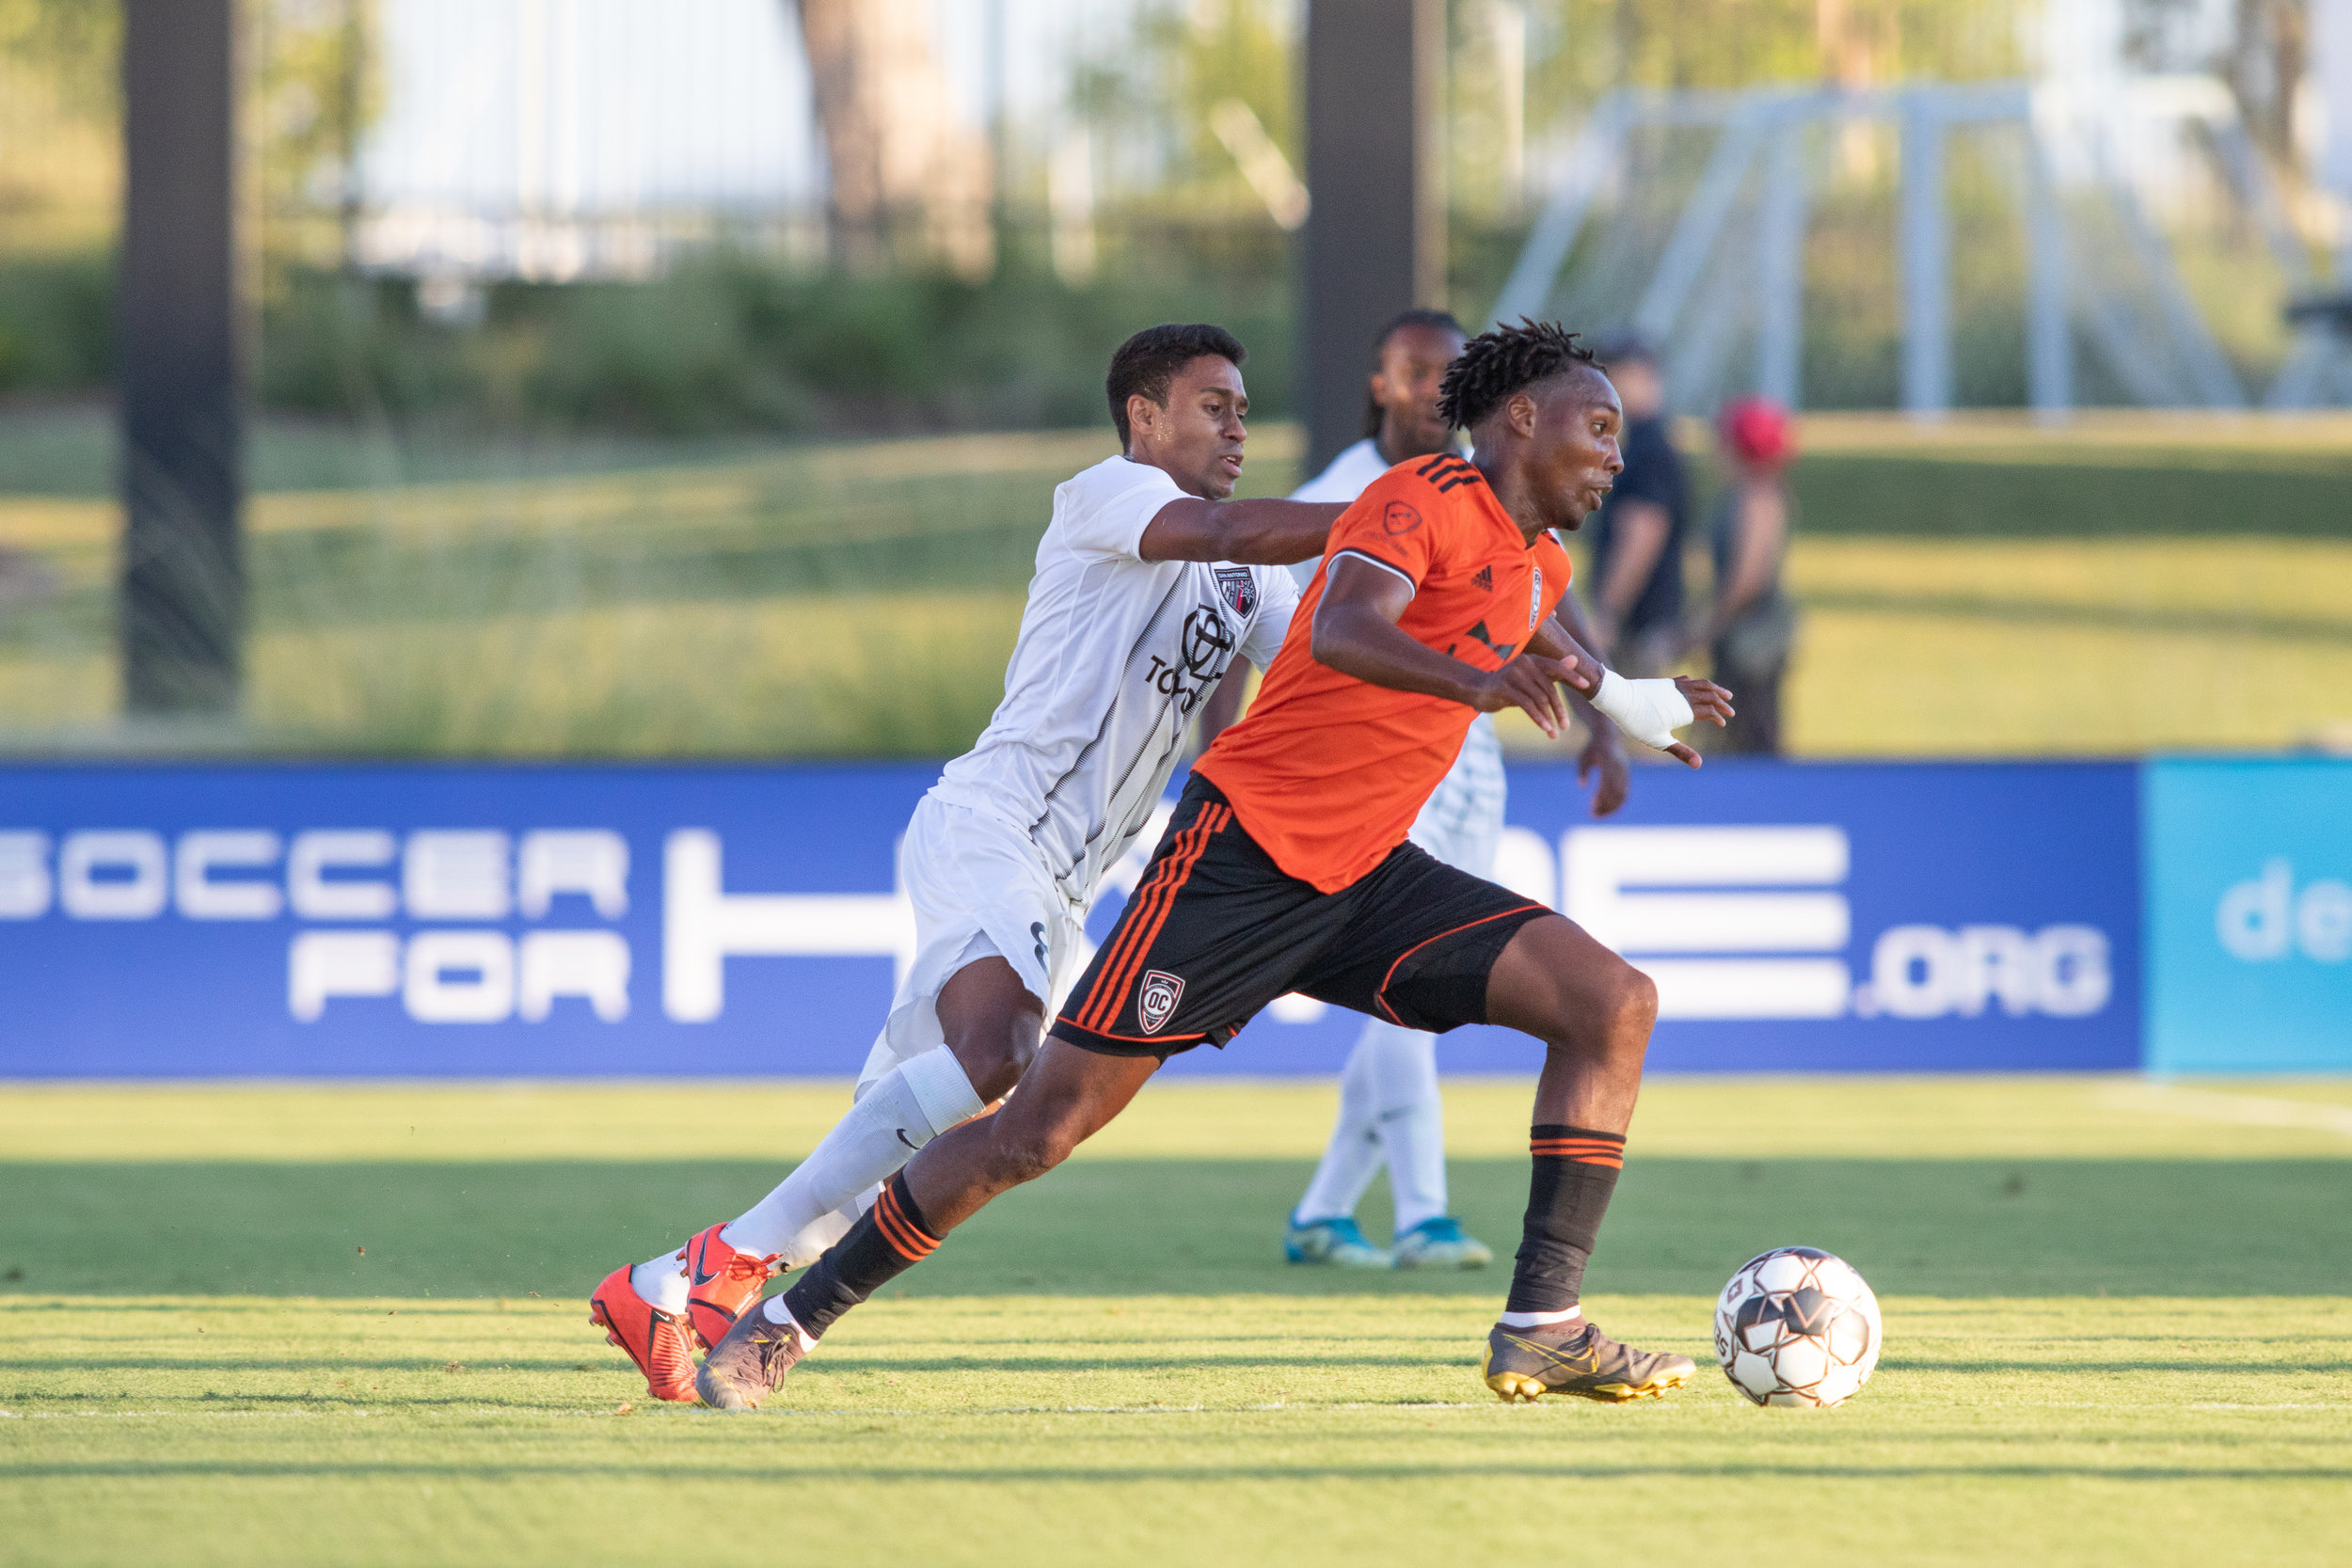 Michael Seaton (right) has found success with Darwin Jones in the side. Both men have each scored eight goals in 20 appearances.  Photo credit: Liza Rosales/Orange County SC .